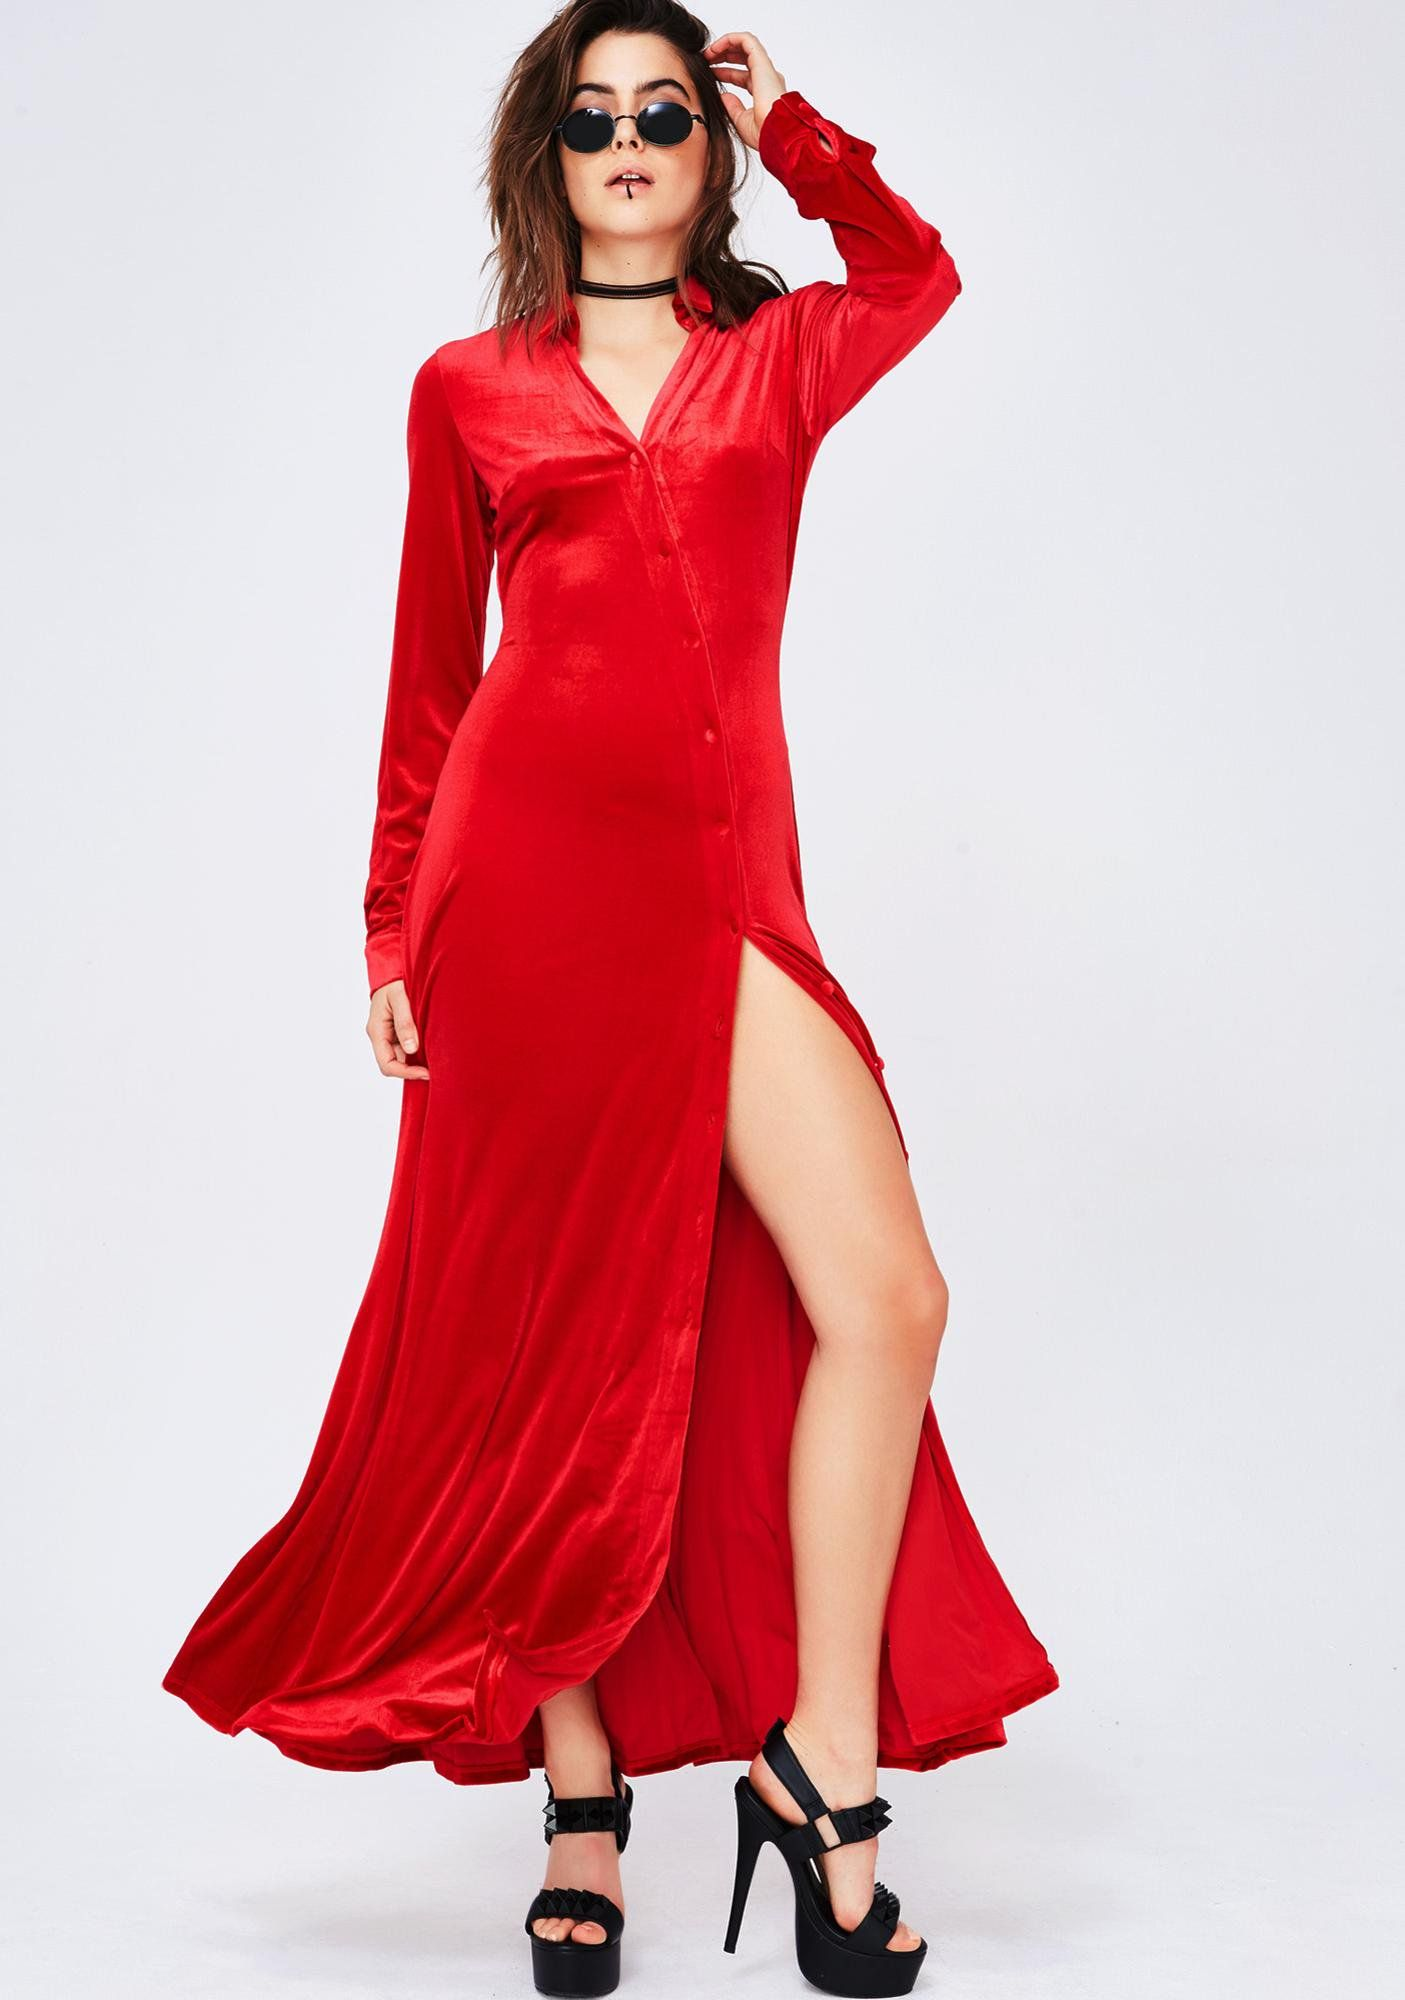 In charge velvet dress maxi dresses closure and fast fashion